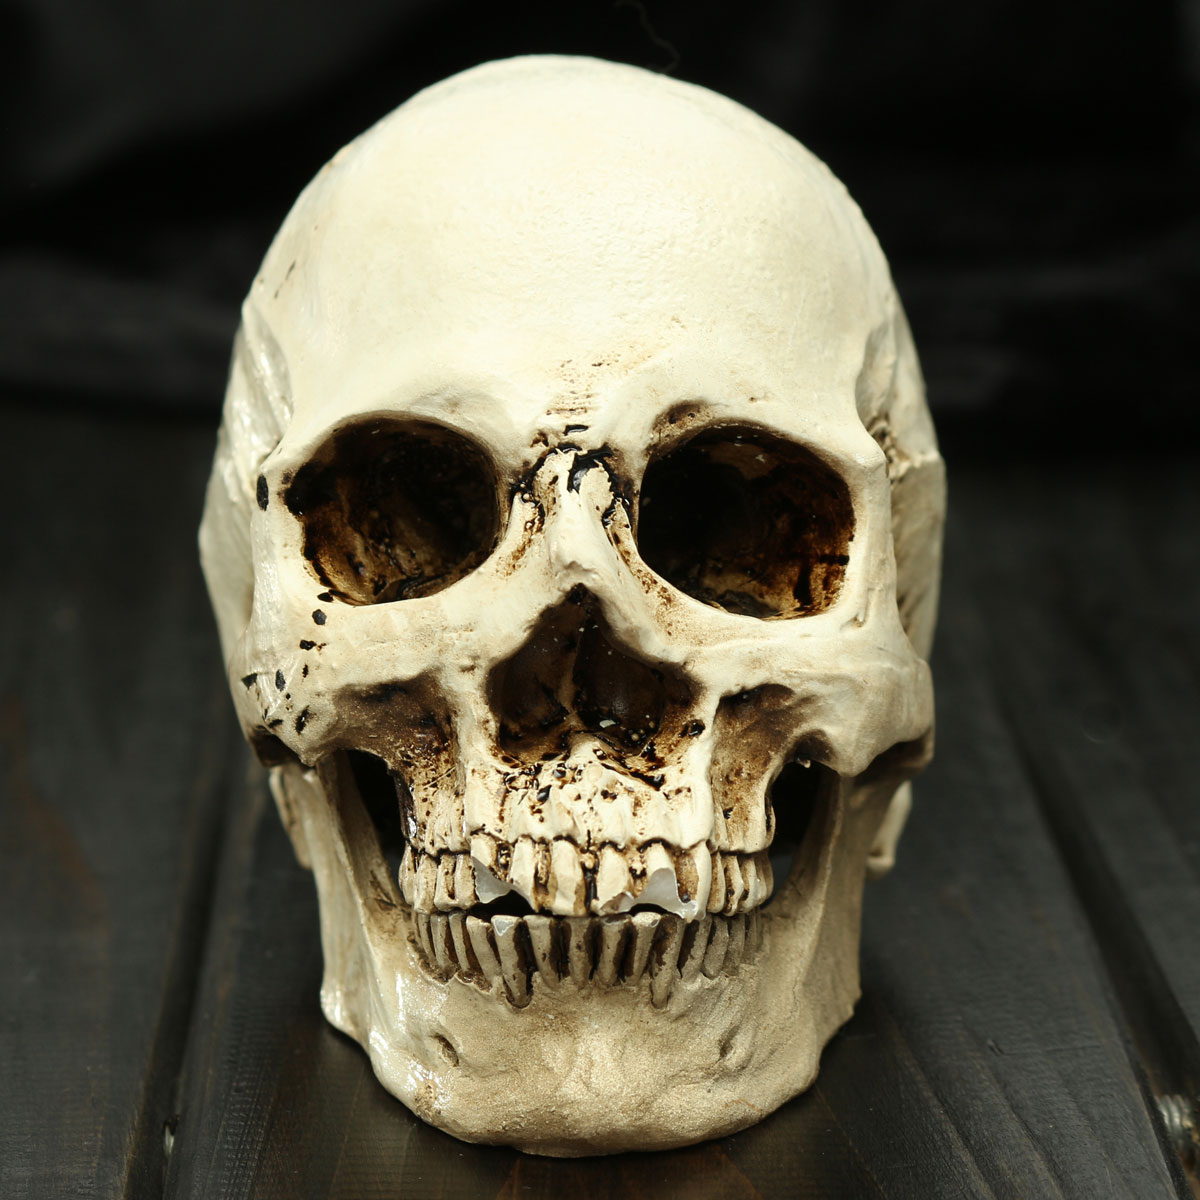 Scary Terrifying Fake Human Skull Death Replica Halloween Decoration